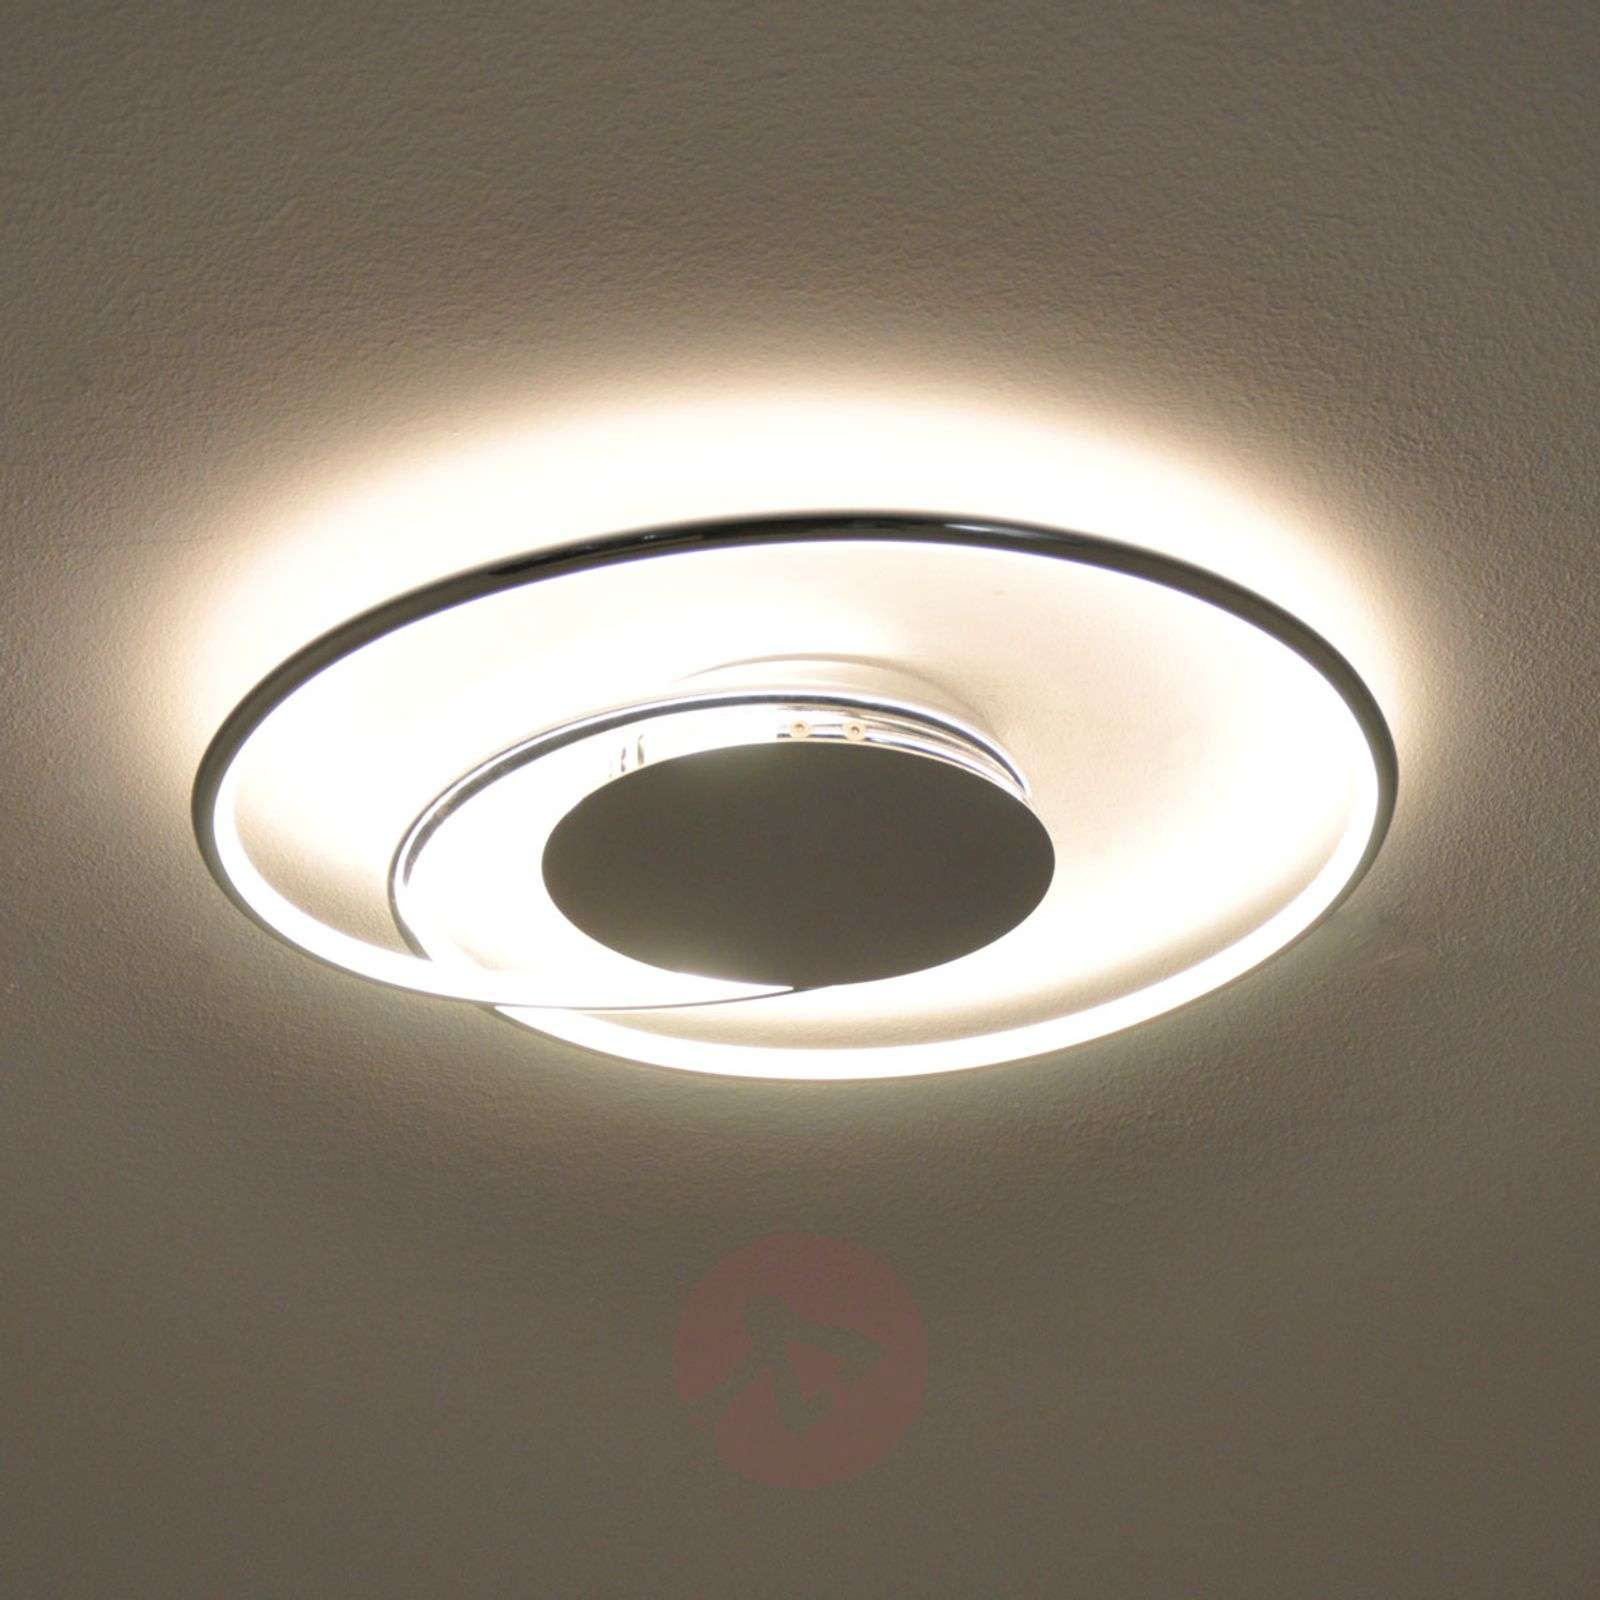 Joline pretty LED ceiling light-9639015-01